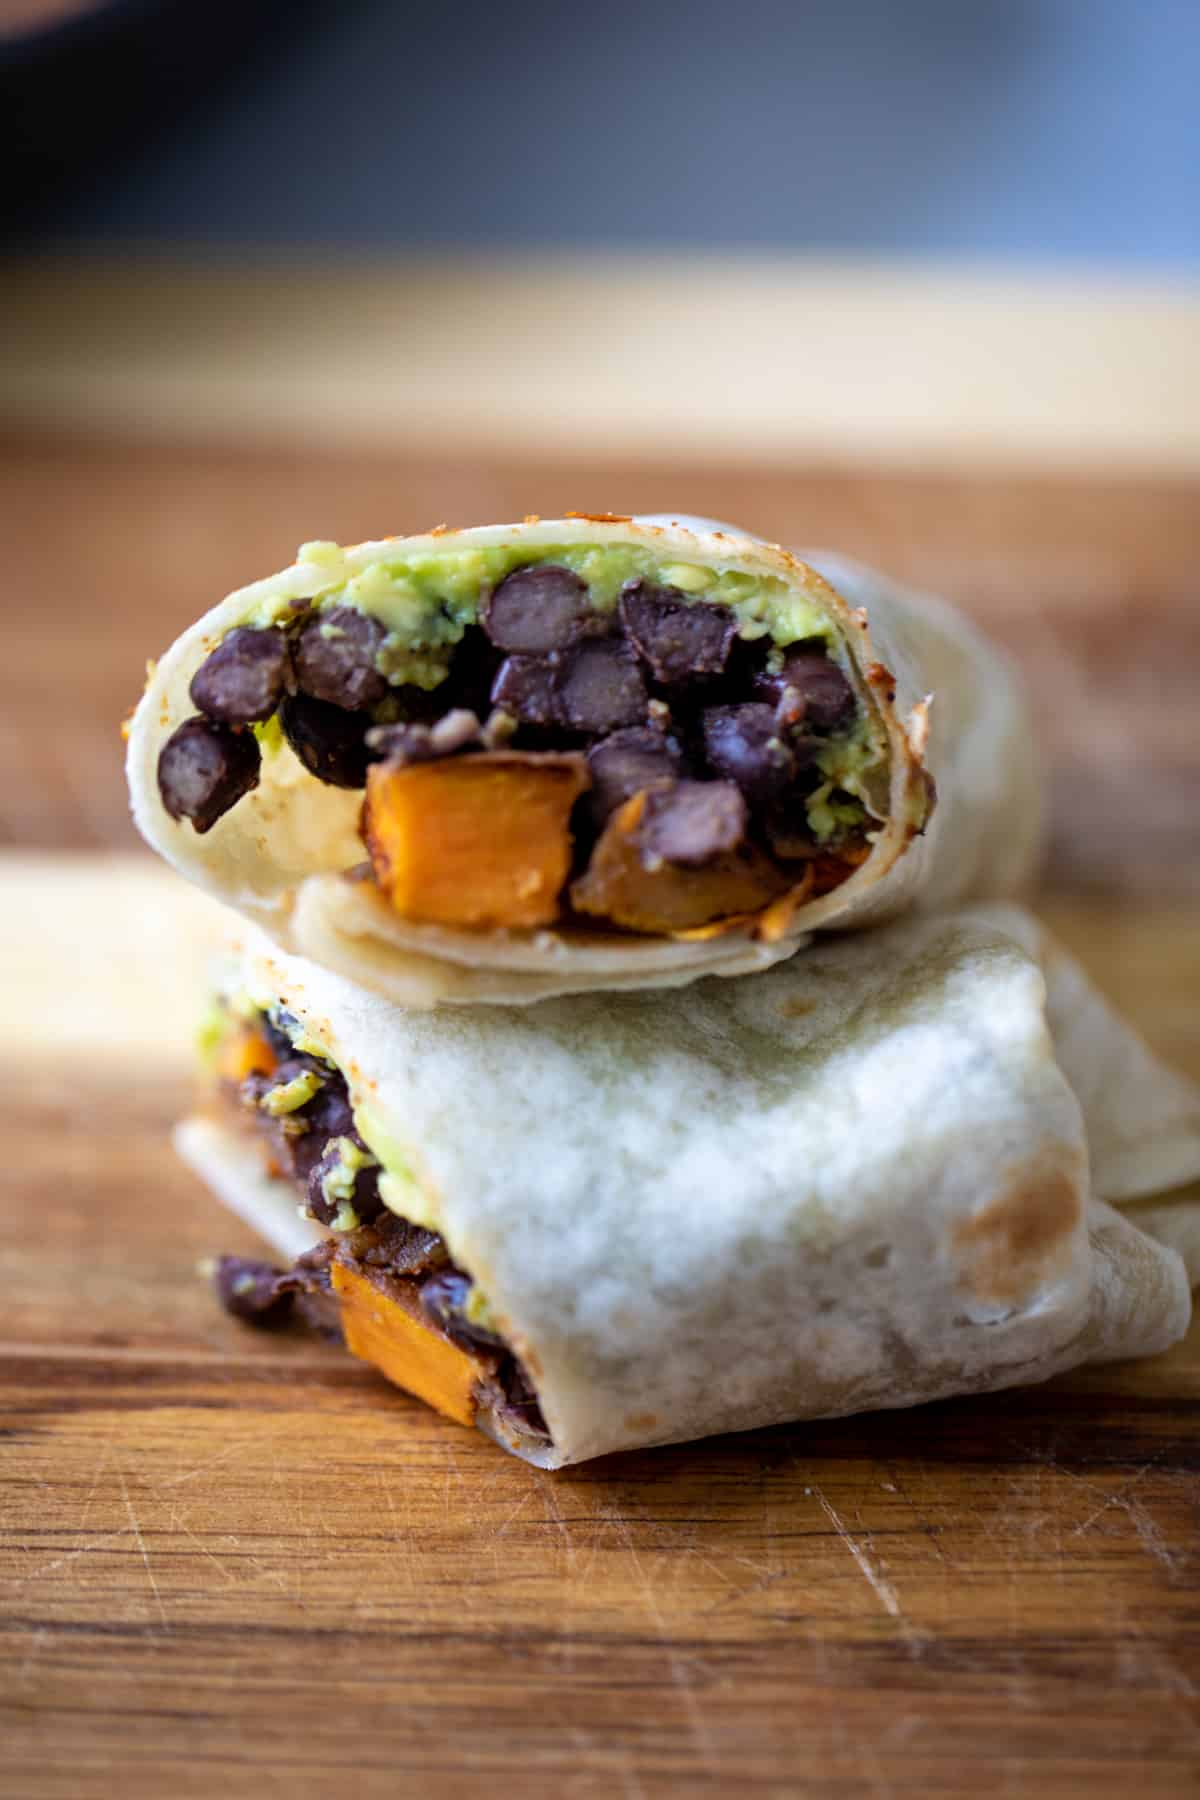 Burrito filled with black beans, sweet potaoes and avocado.